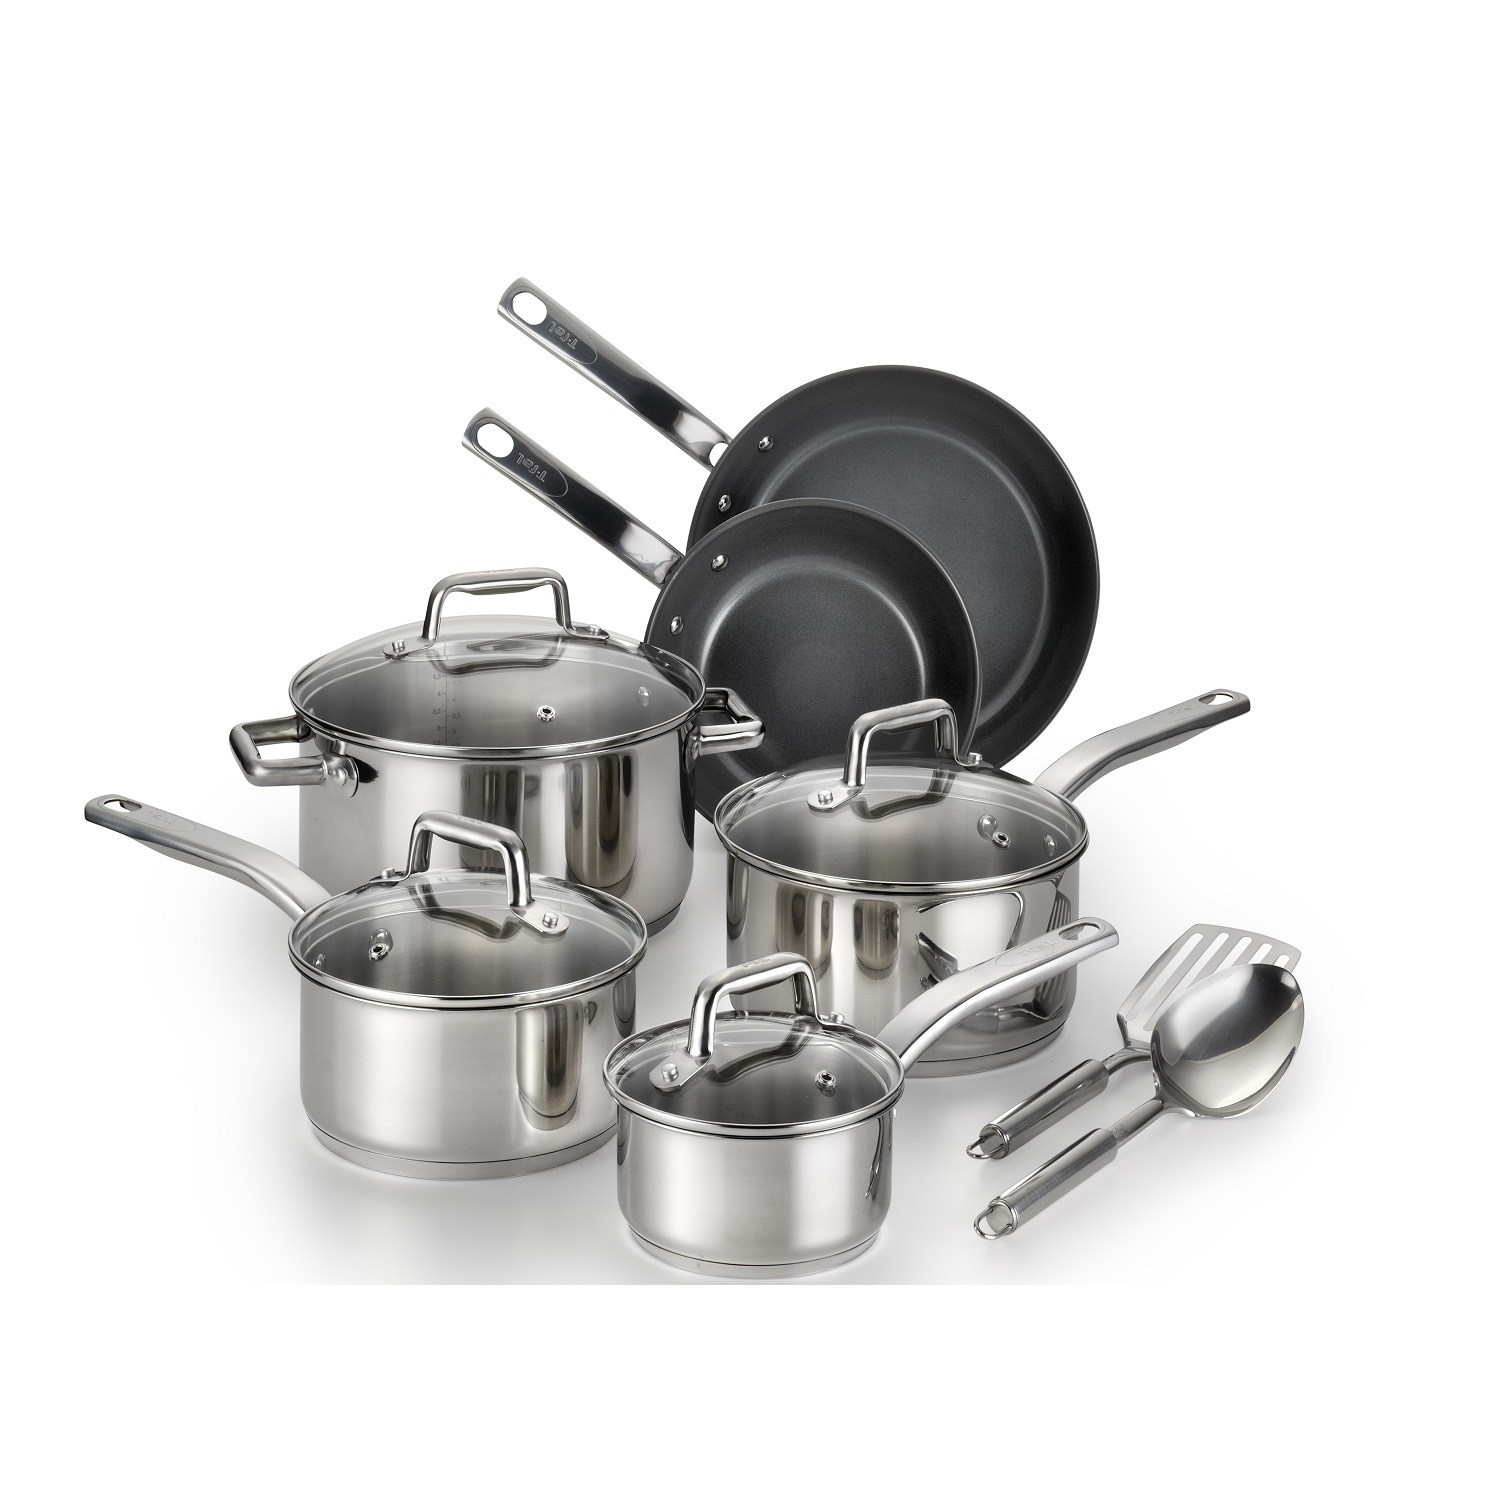 T-FAL Precision Ceramic Stainless Cookware Set, Silver st...